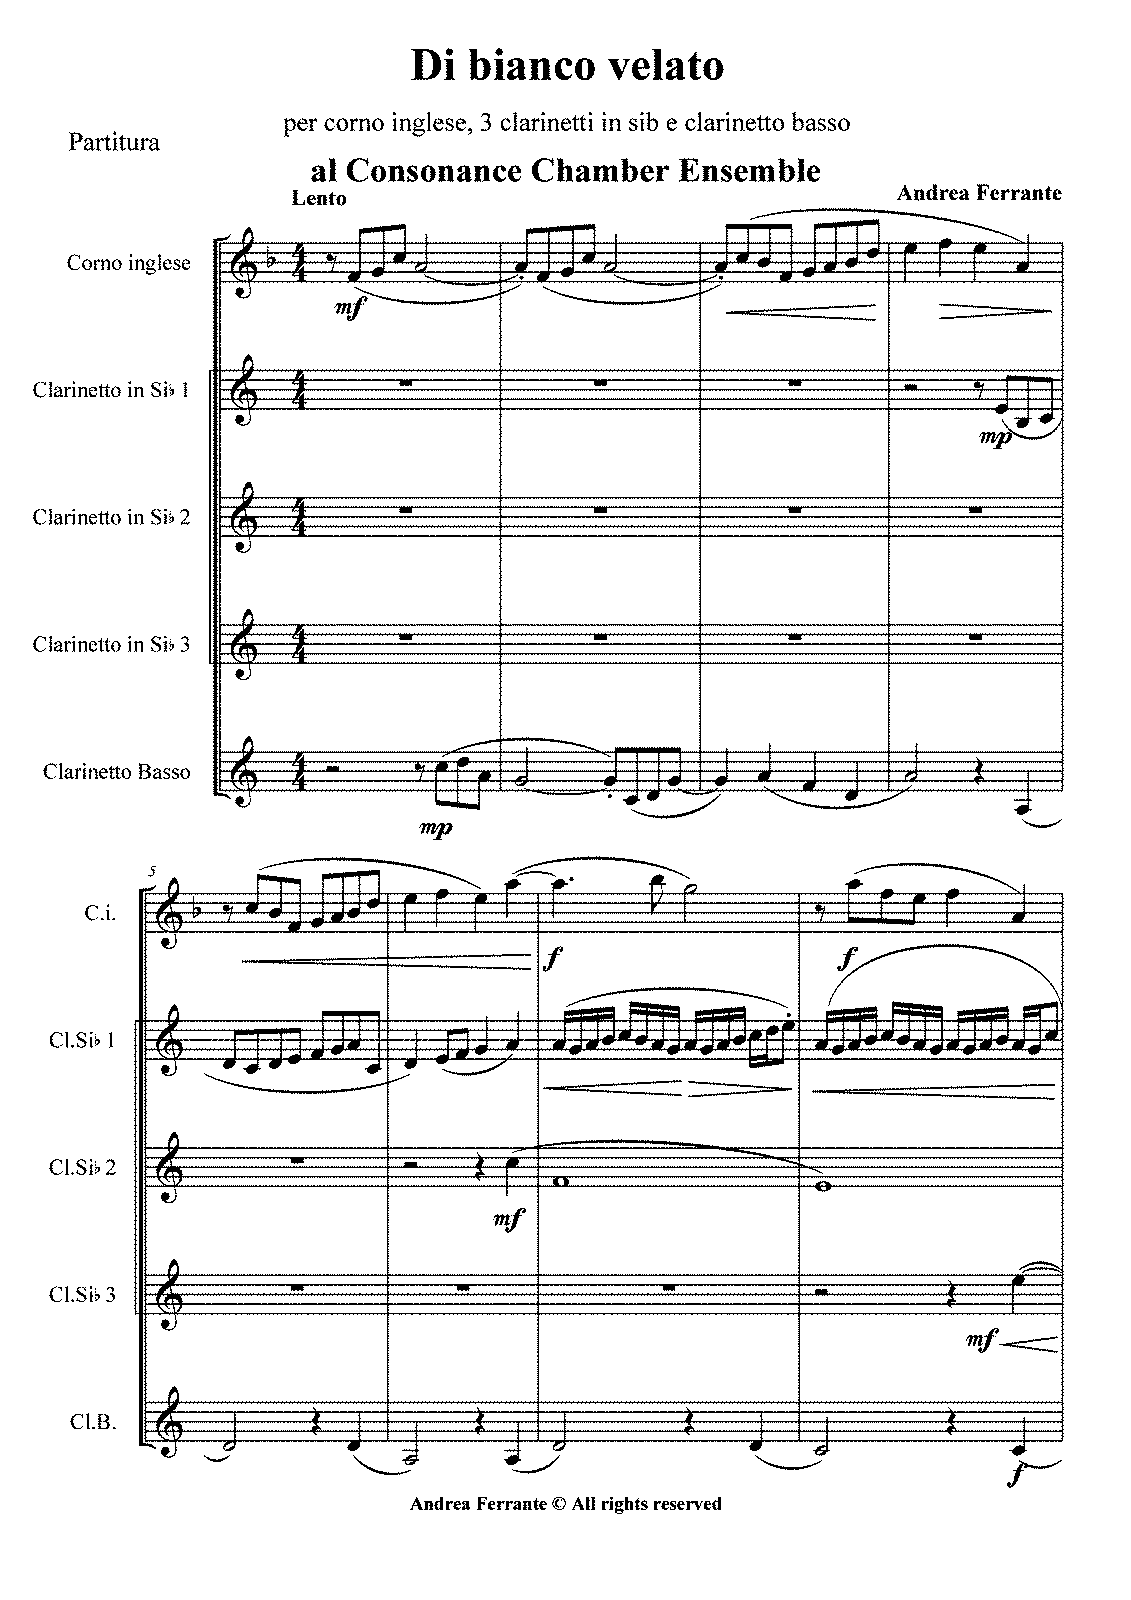 PMLP156538-A.Ferrante - Di bianco velato - for english horn and 4 clarinets - SCORE.pdf